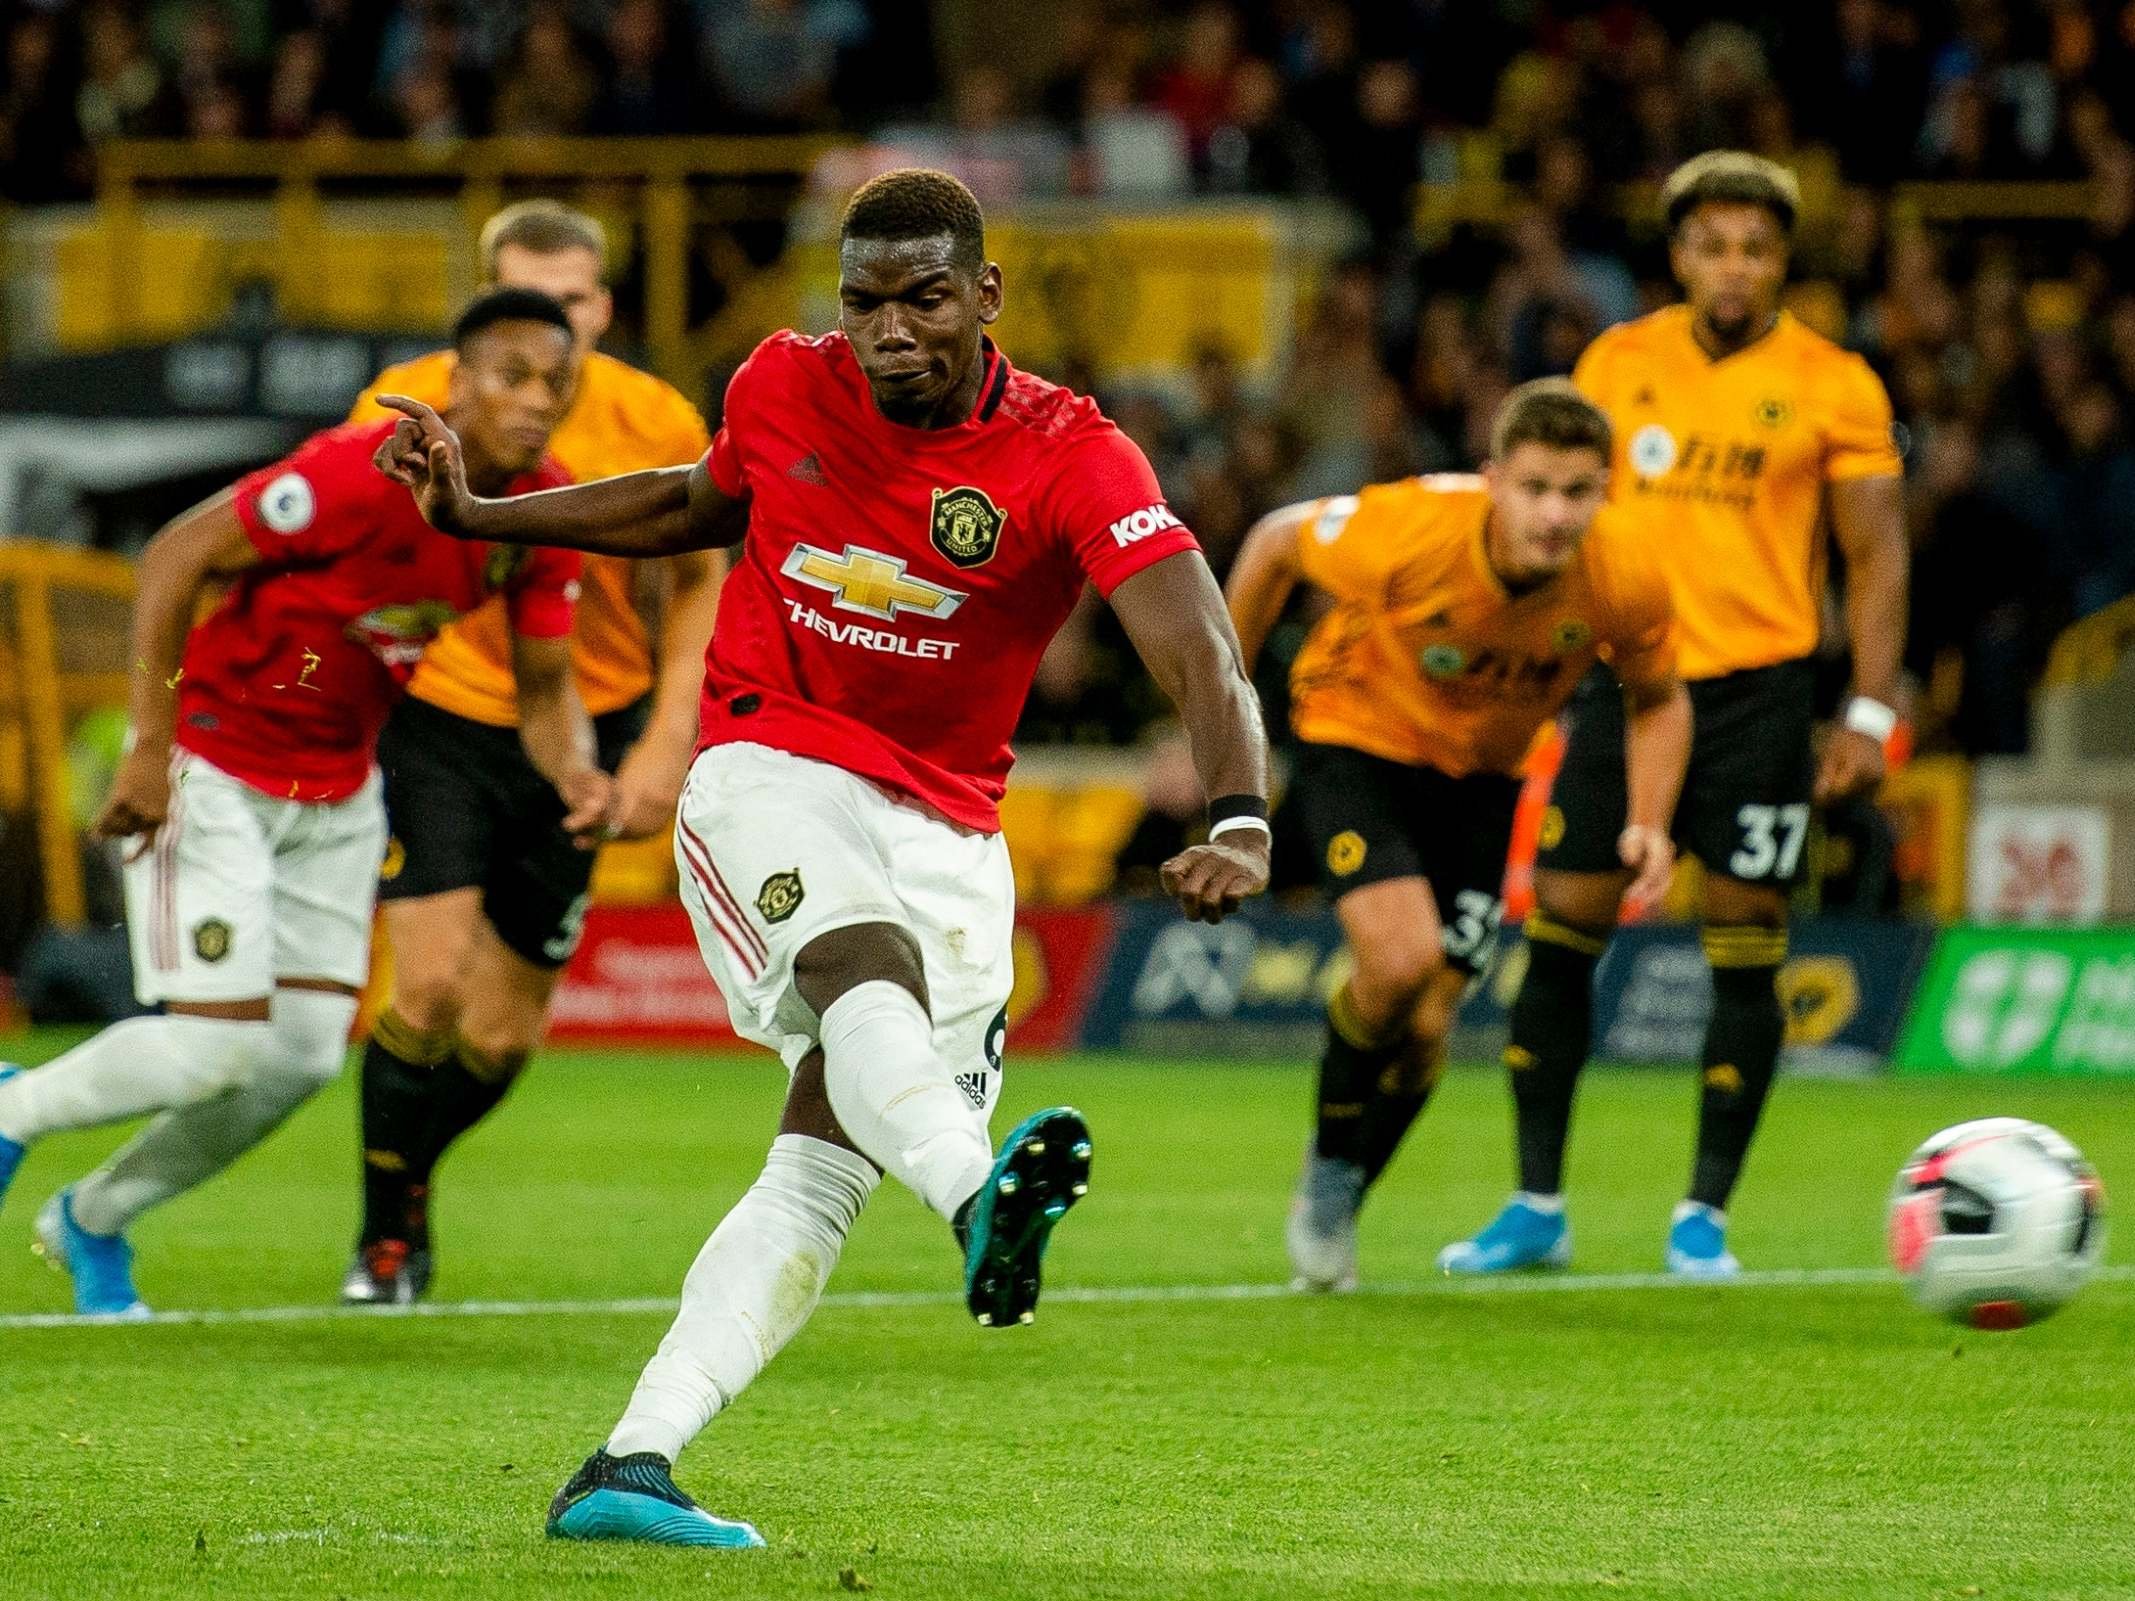 Wolves vs Manchester United player ratings: Pogba's missed penalty sees Ole Gunnar Solskjaer's side held to draw